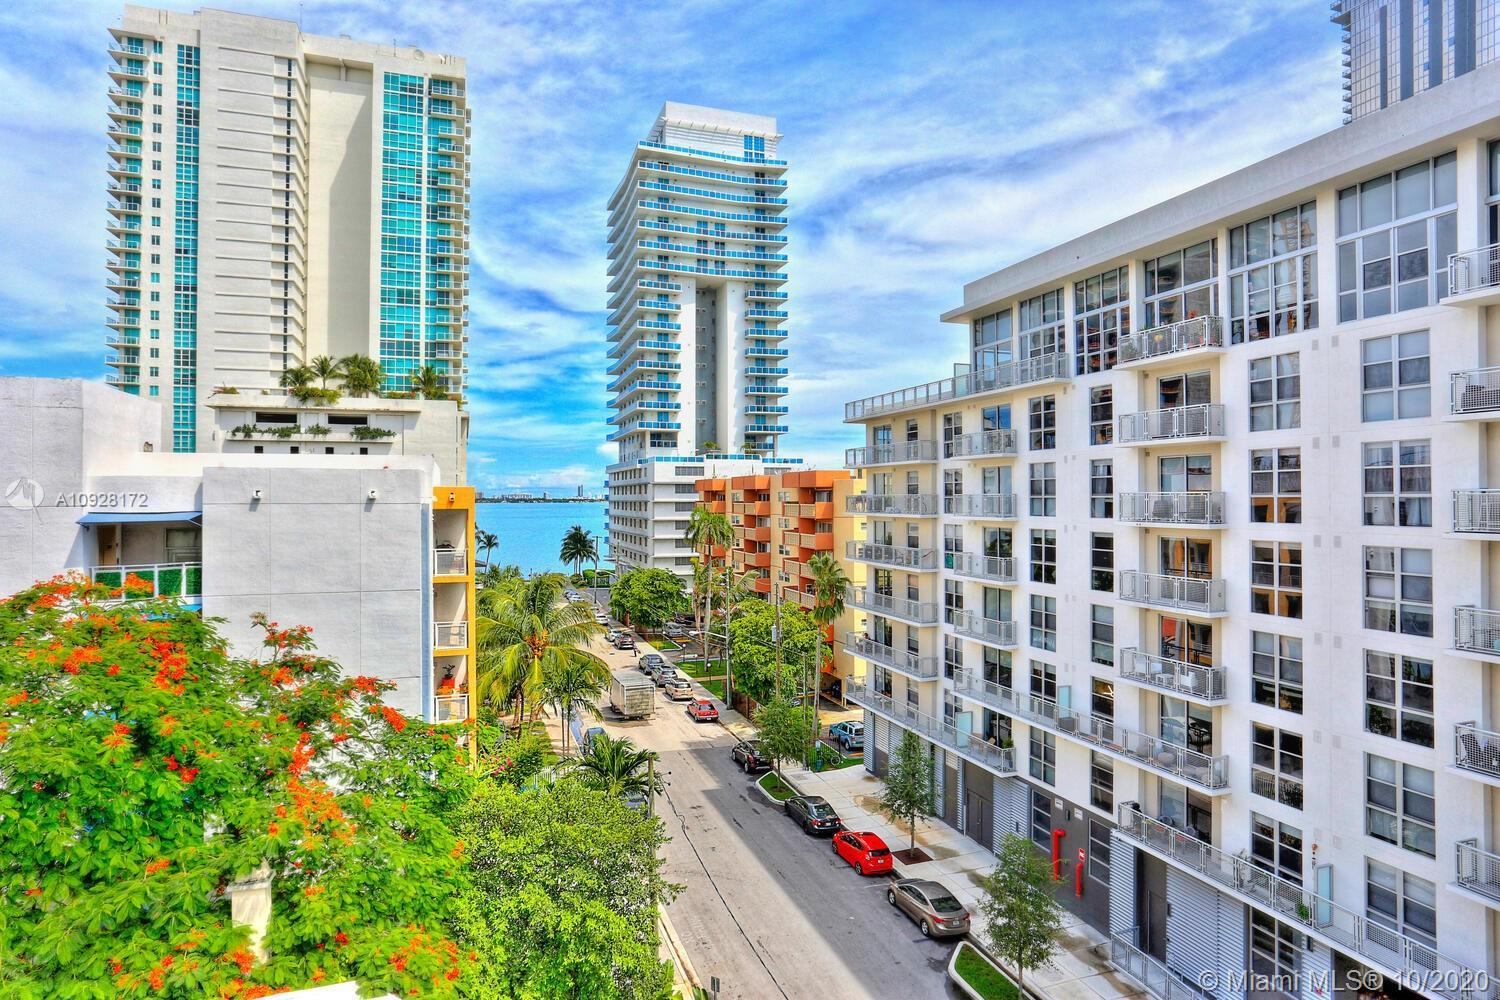 Chic, modern 2BR/2BA loft in Edgewater, walking distance to shopping, dining, bayfront parks, theate